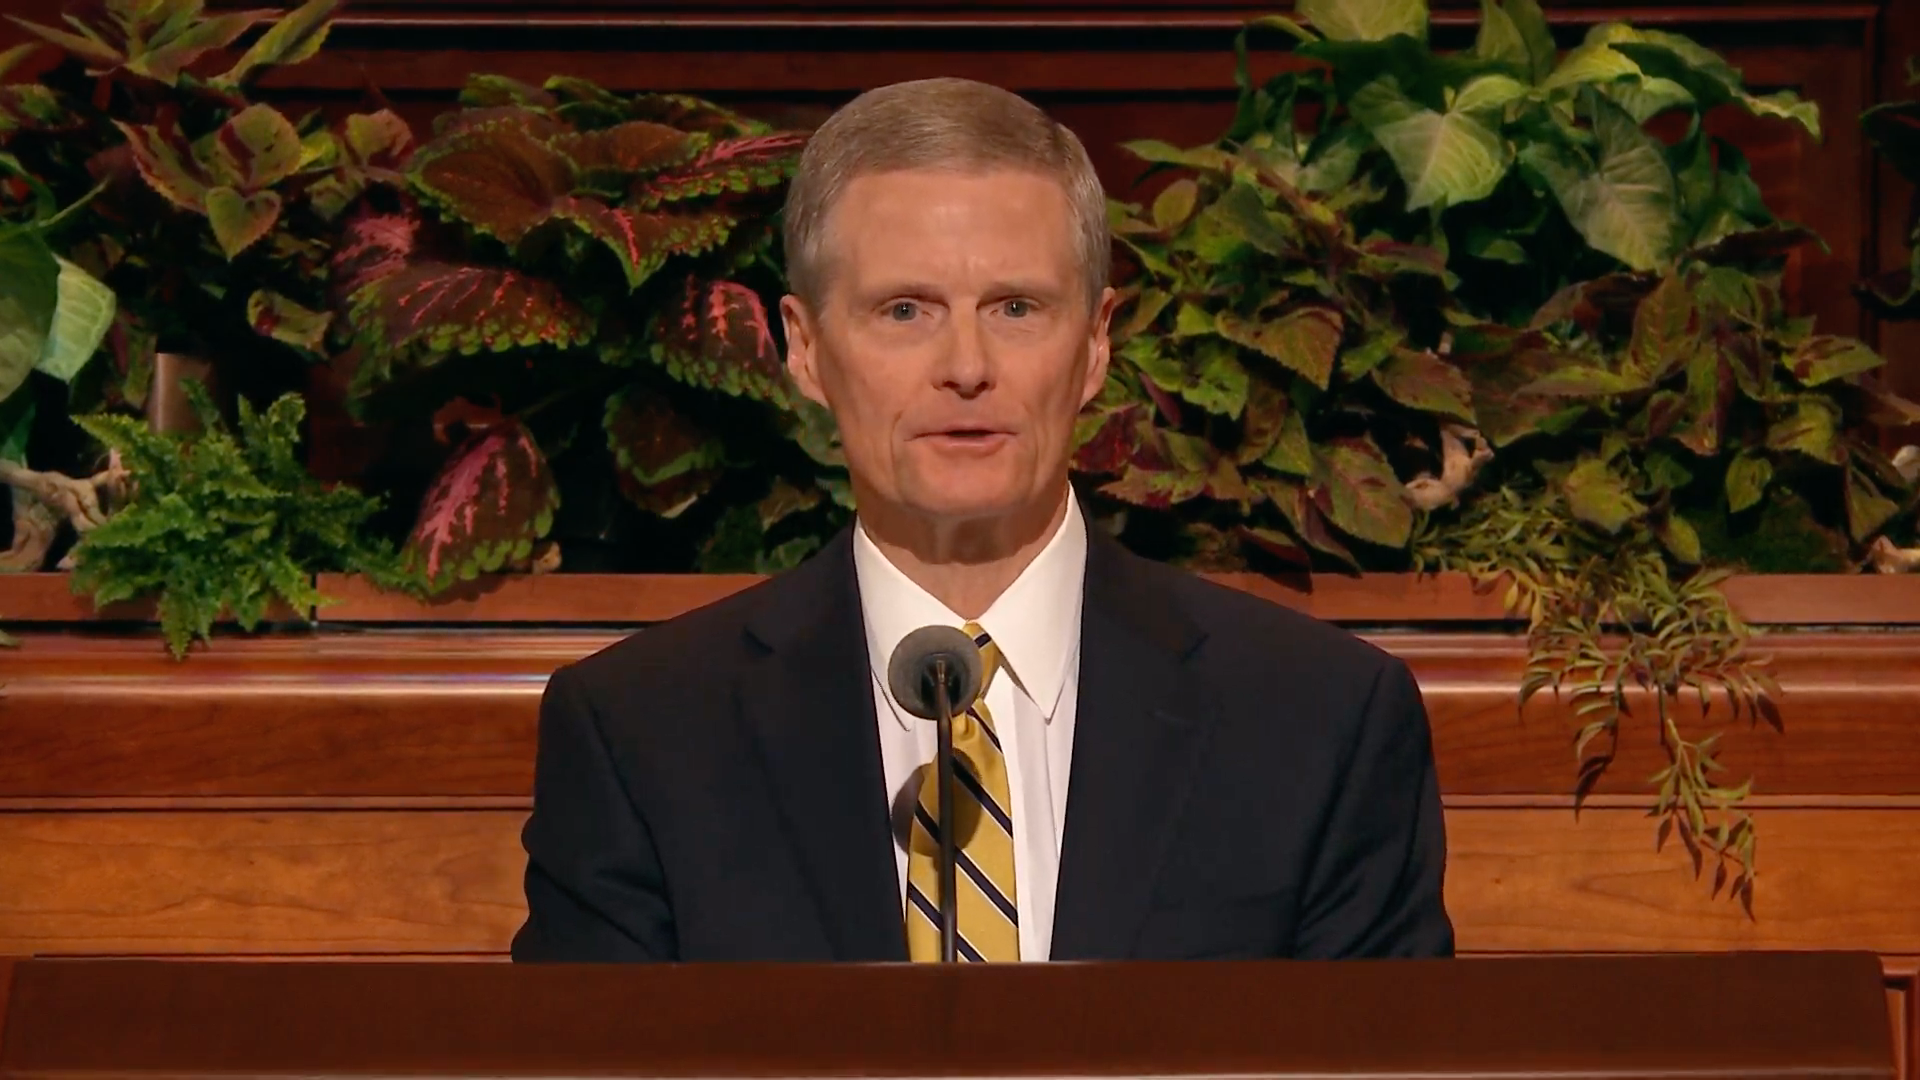 Elder David A. Bednar of the Quorum of the Twelve Apostles speaks during the Saturday afternoon session in the 189th Semiannual General Conference of the Church on Oct. 5, 2019.